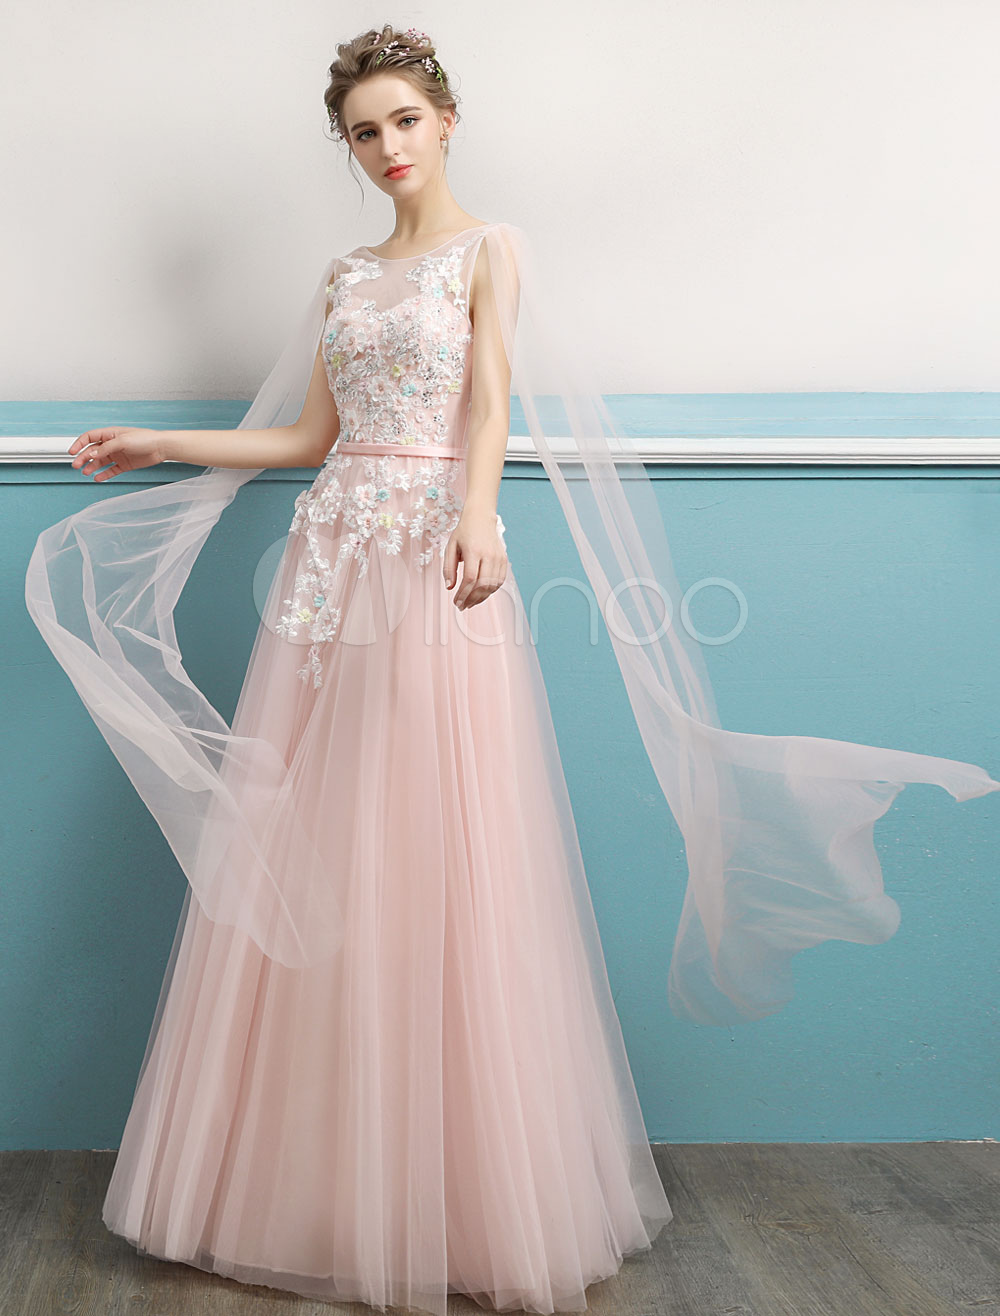 Prom Dresses Long Soft Pink Lace Backless Flowers Beaded Ribbons Floor Length Formal Dresses